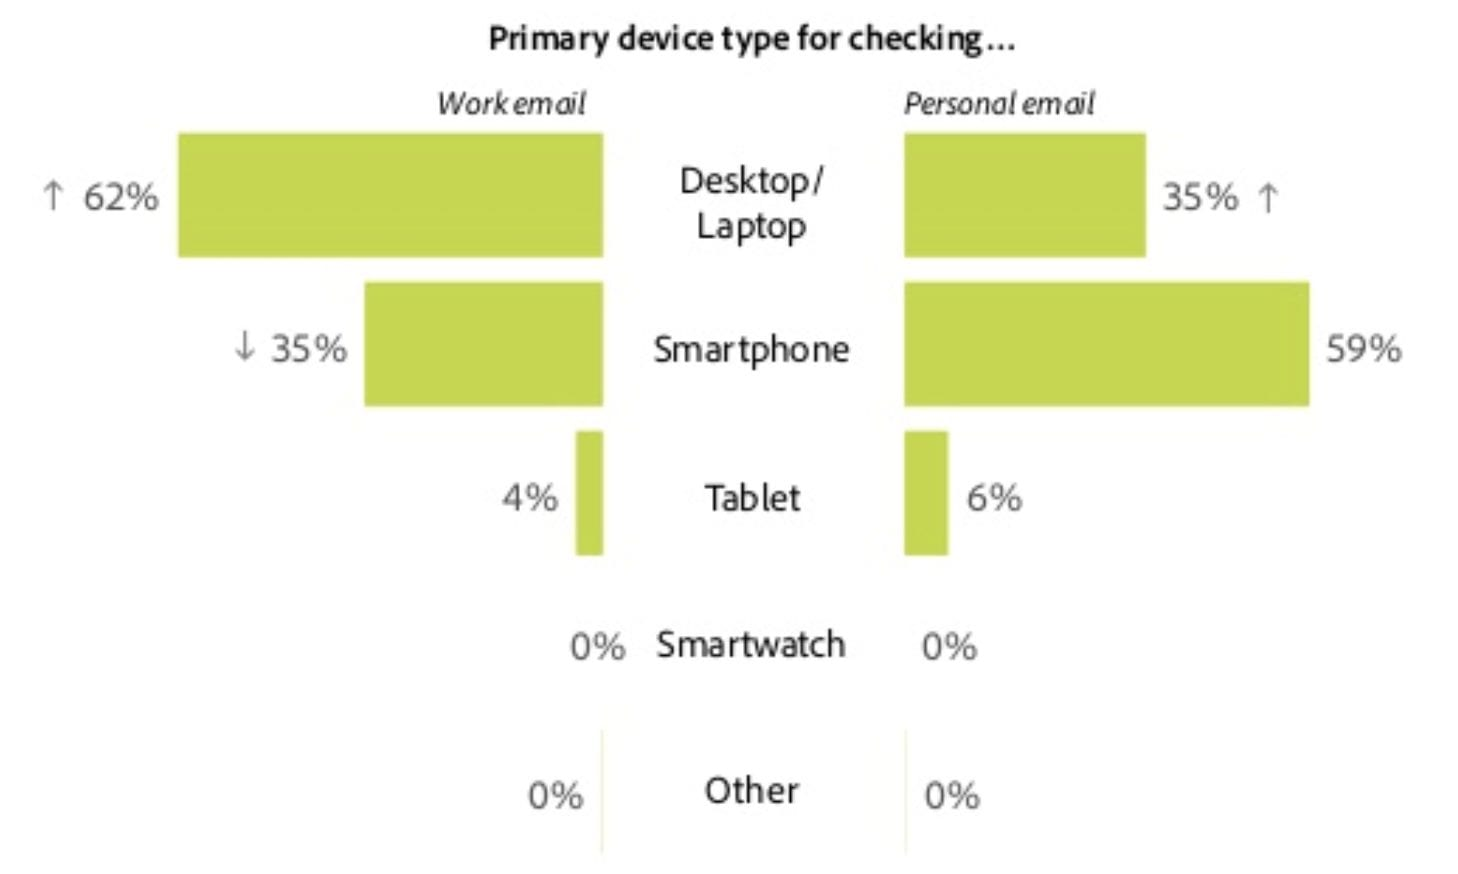 devices useful for checking work and personal email